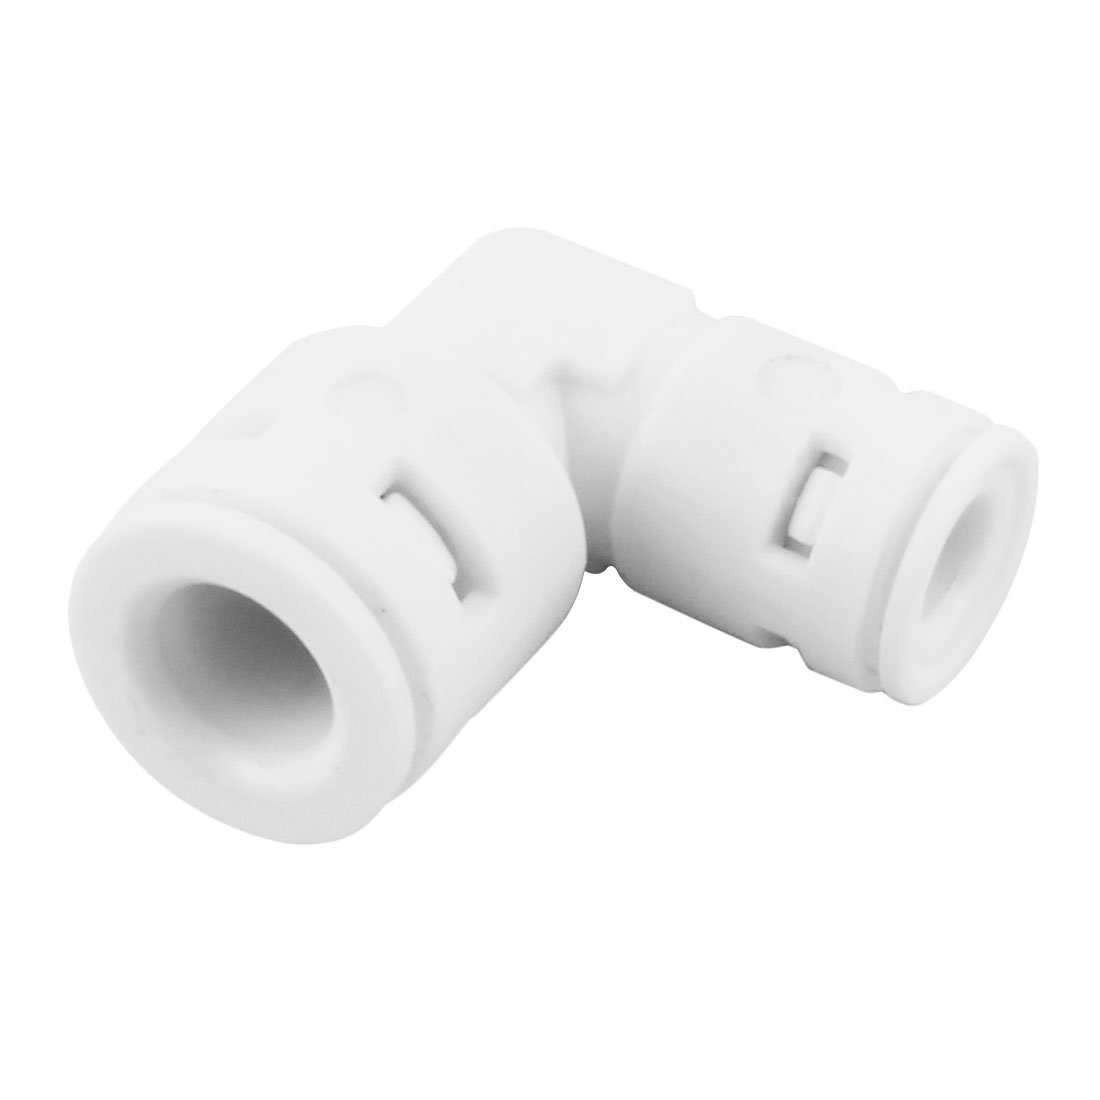 sourcingmap® Home Replacement 6mm to 10mm Diameter Tube Push in Water Dispenser Quick Adapter US-SA-AJD-307082